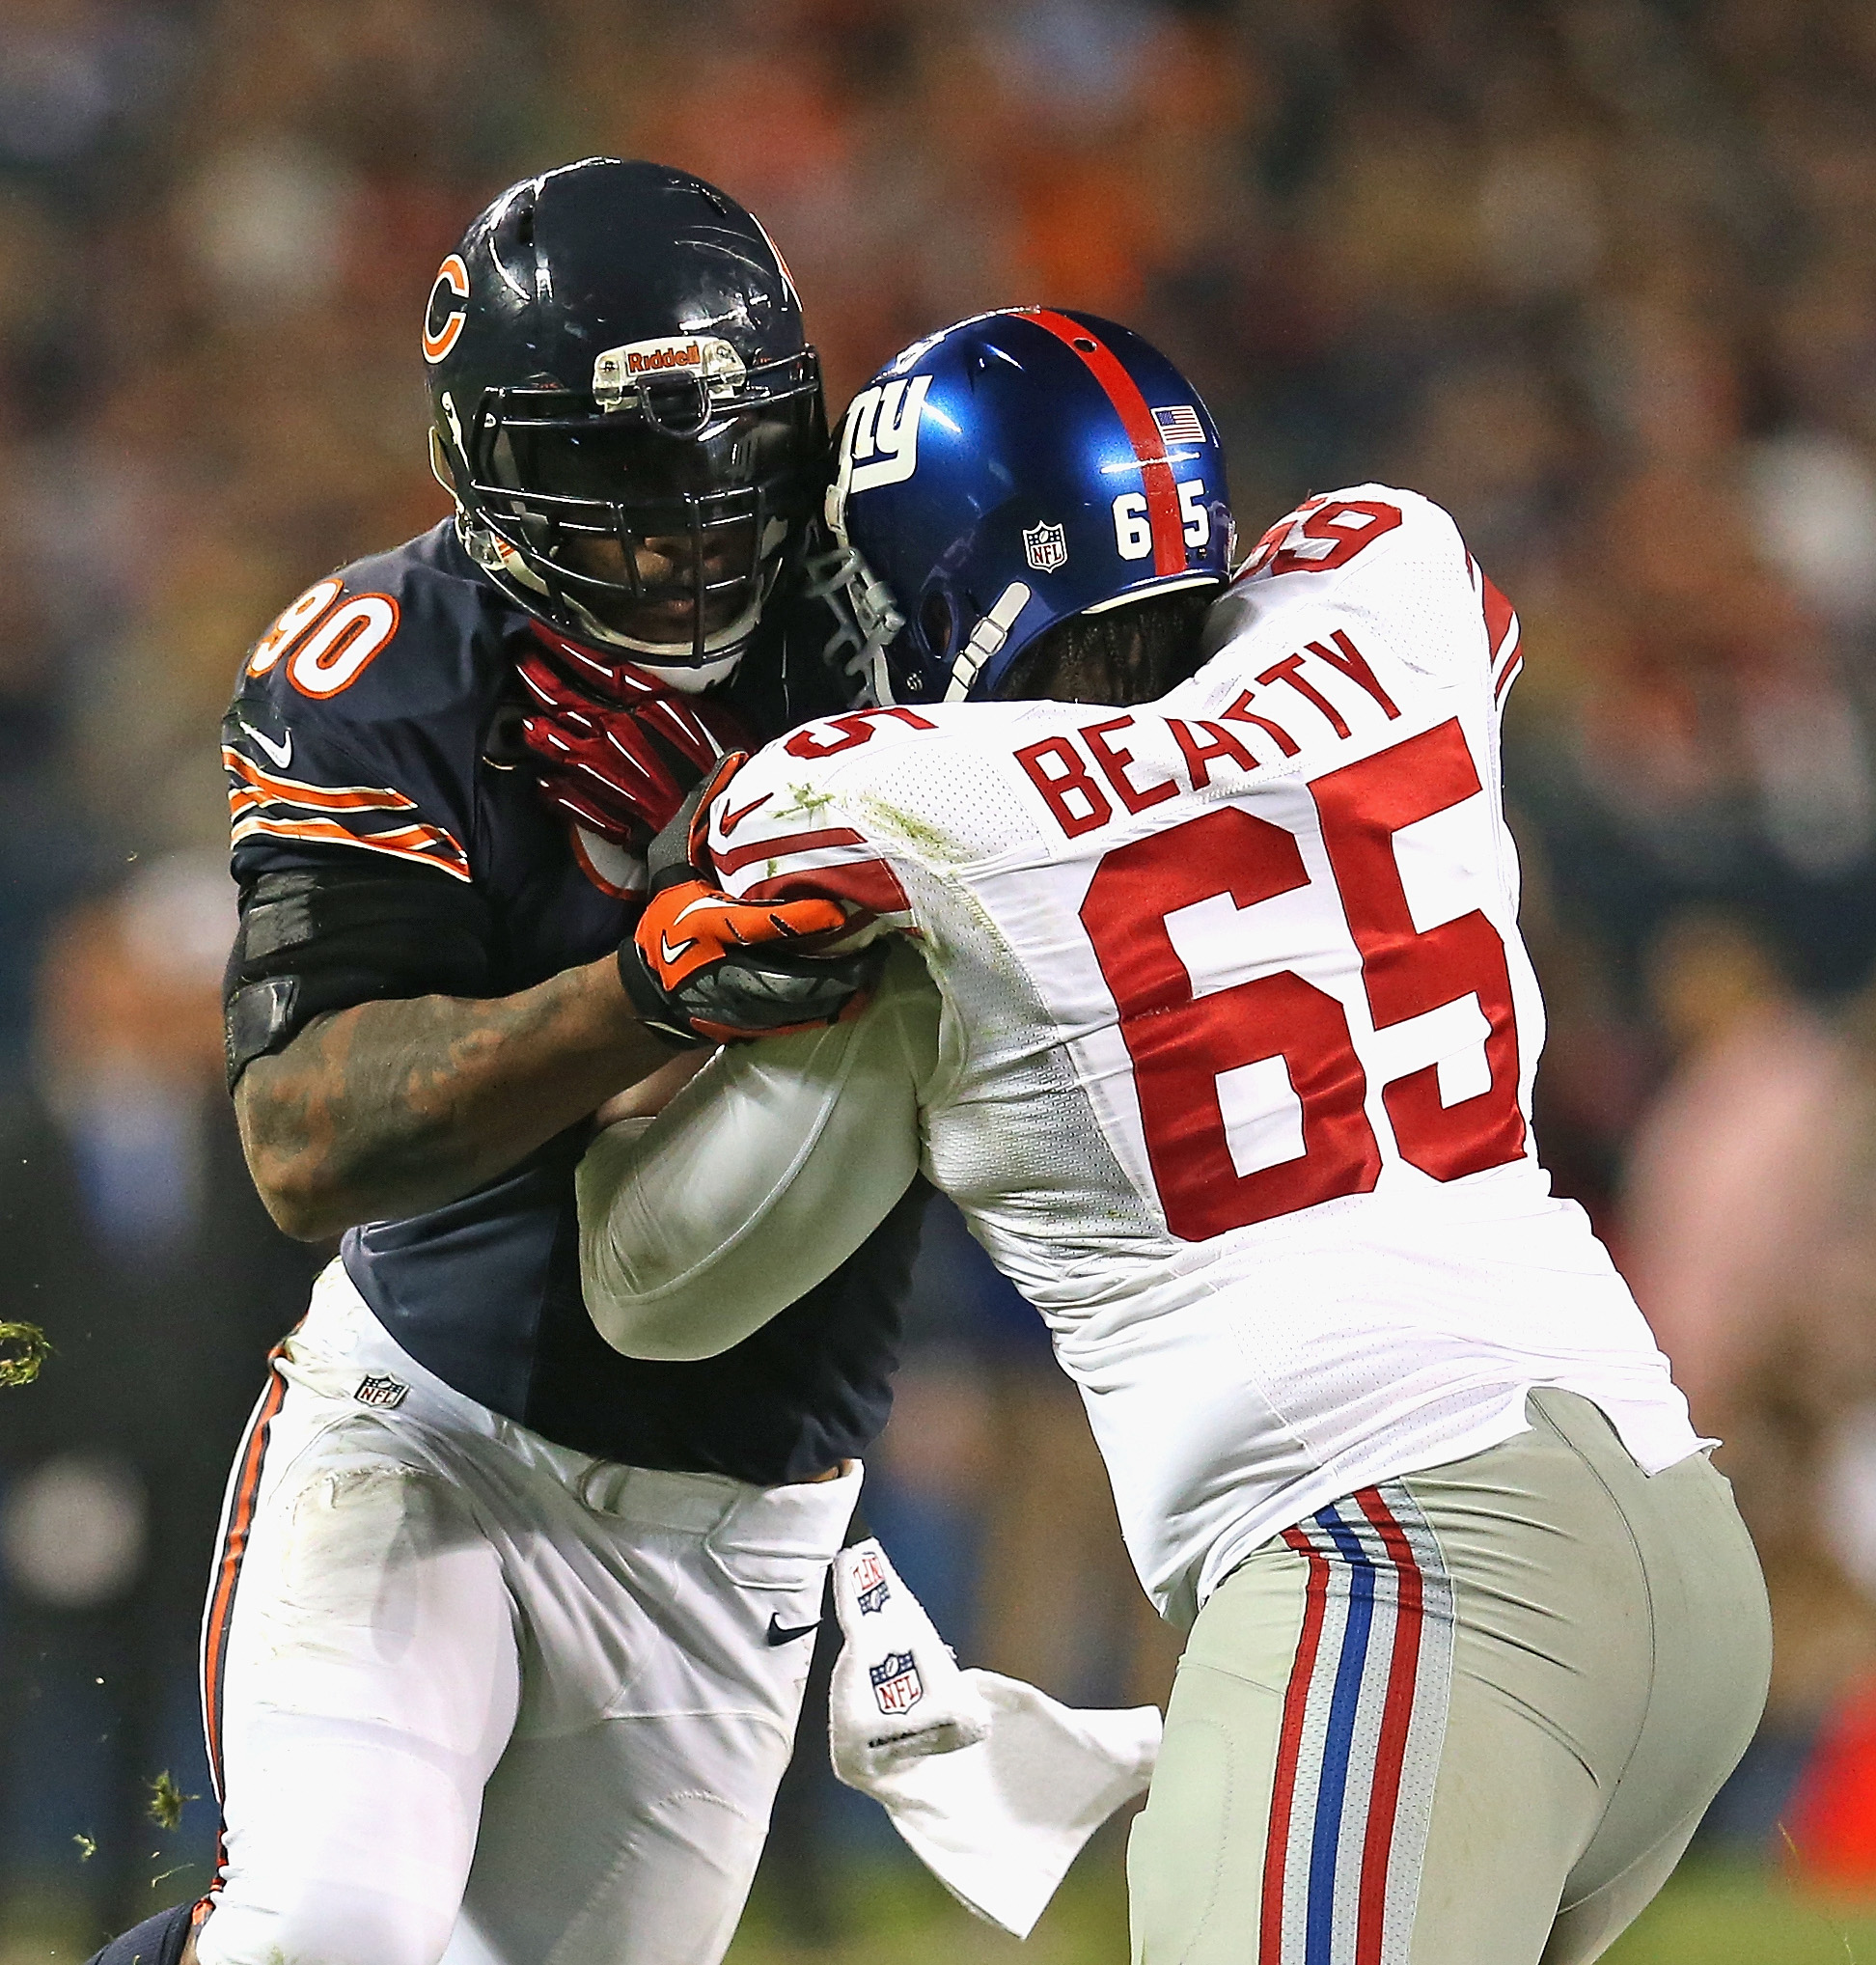 Will Beatty (65) has to be removed from the PUP list today if he is going to play this year